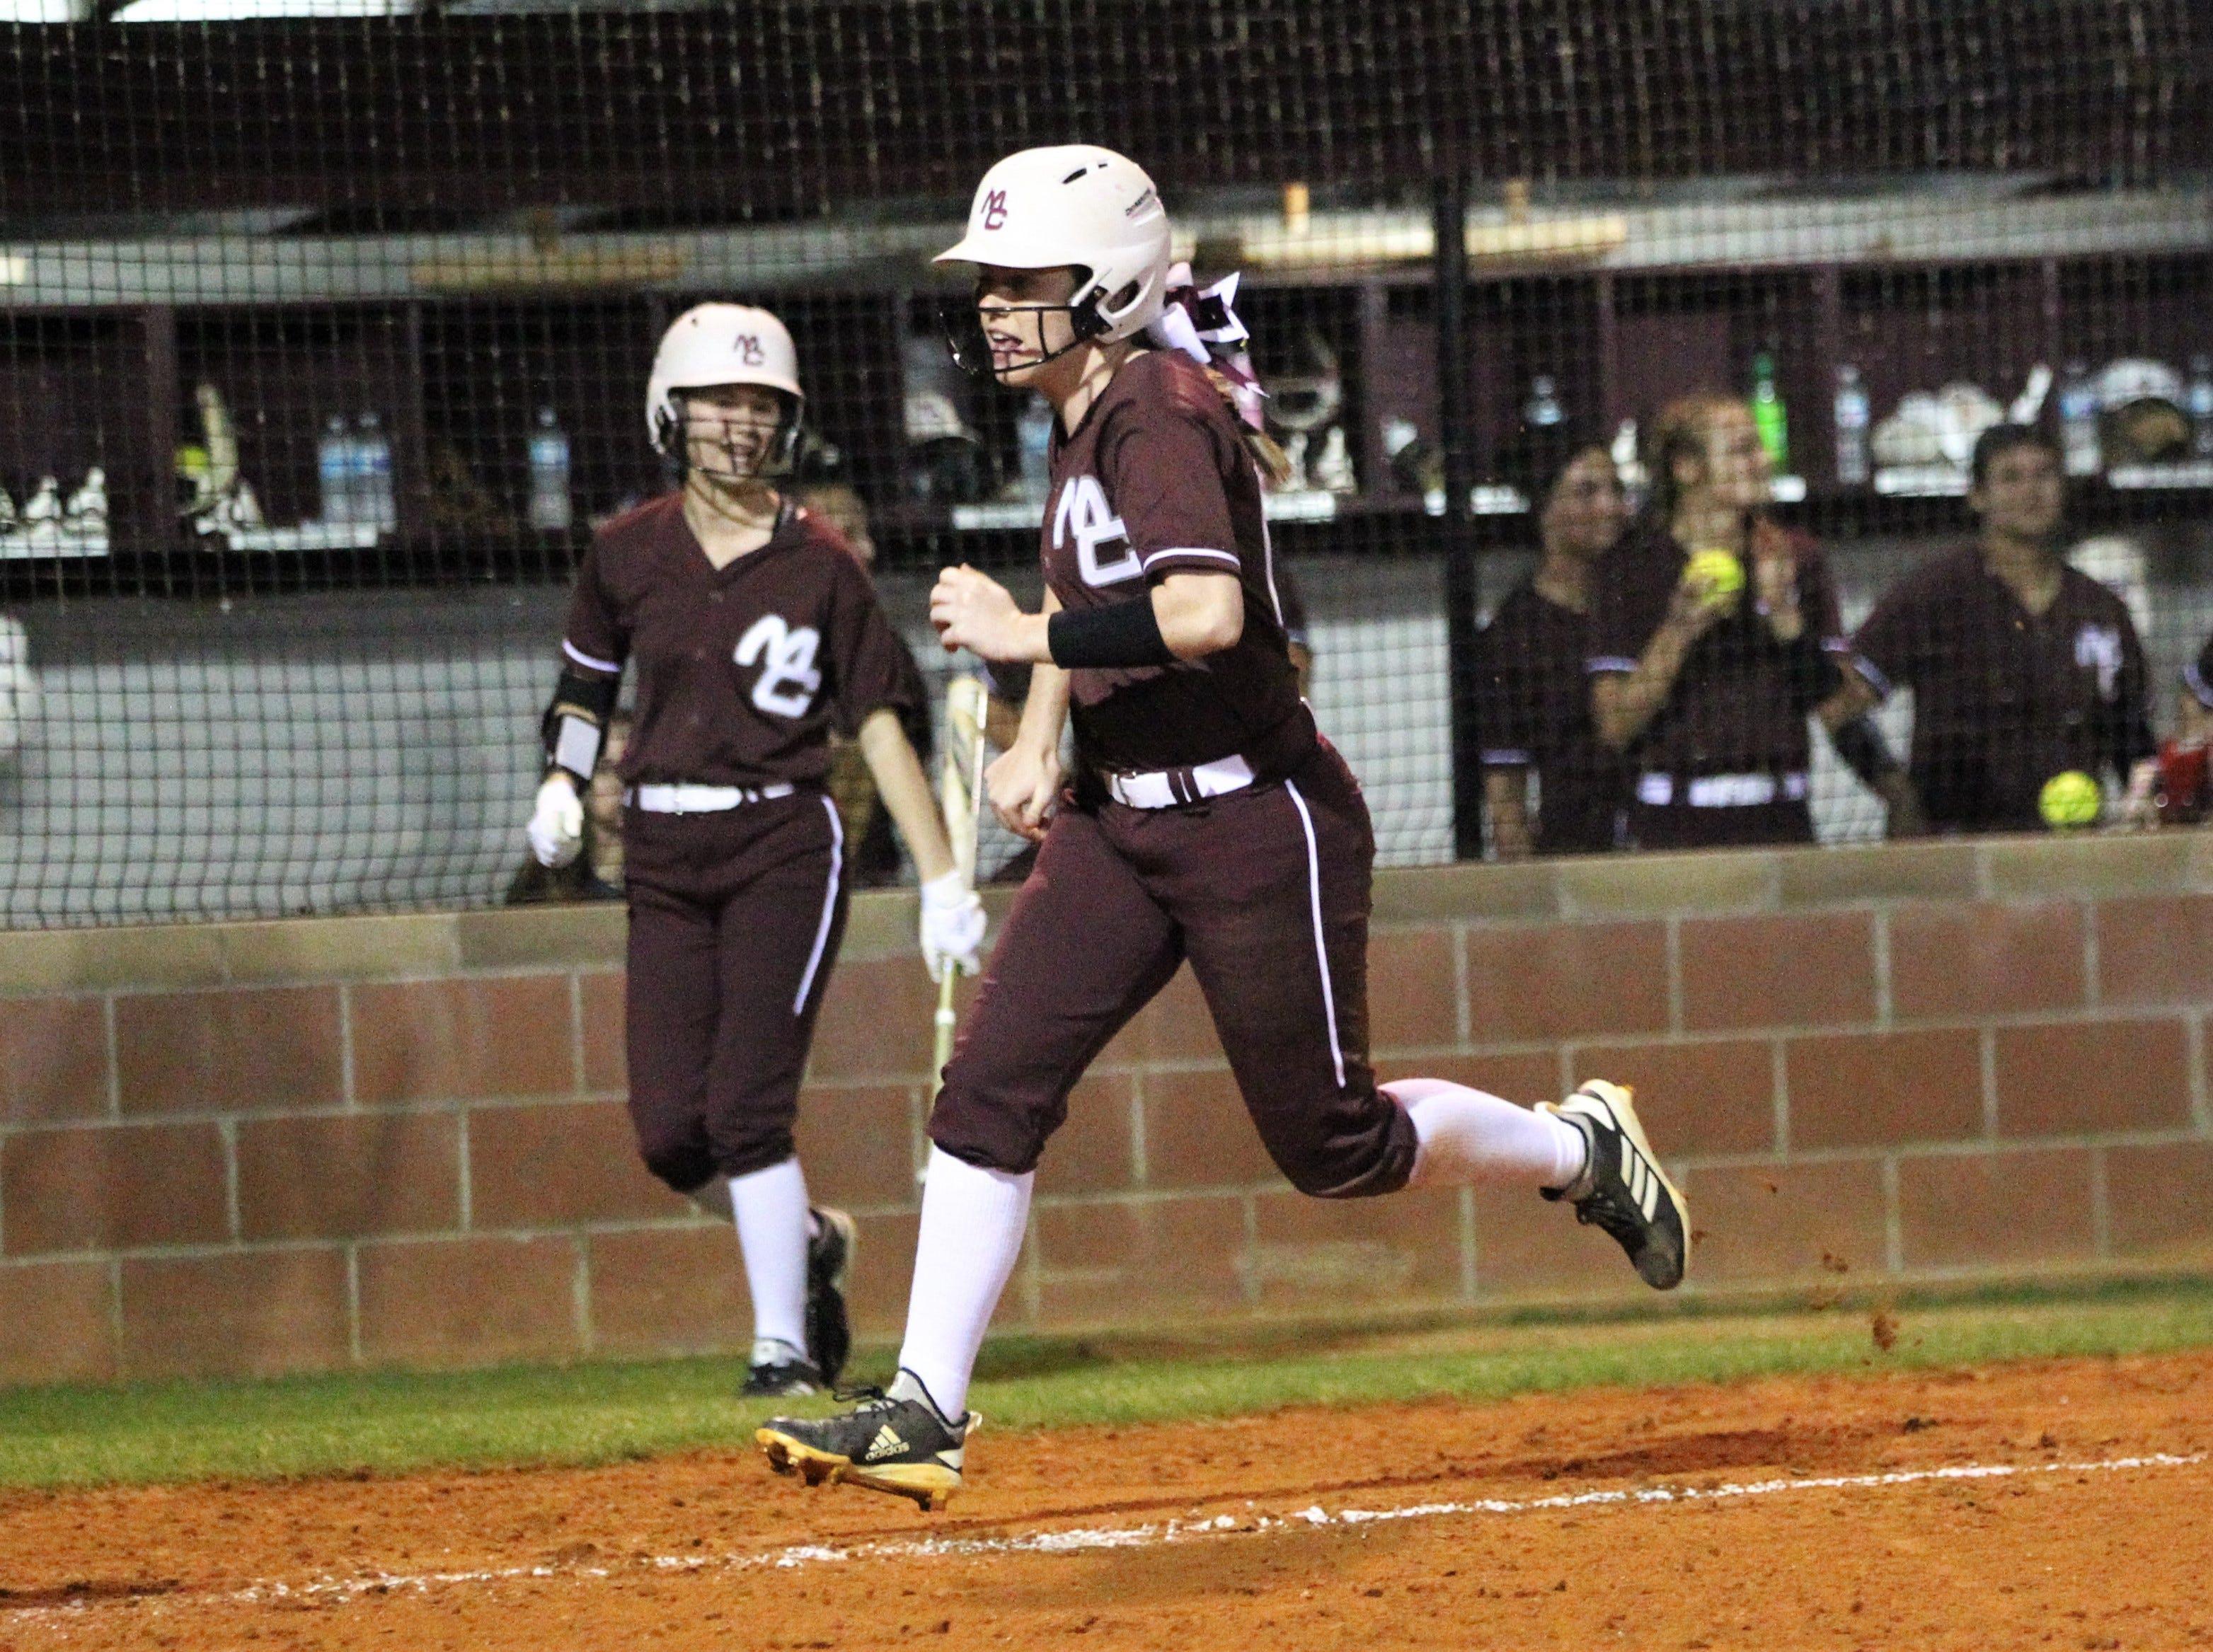 Madison County's Gracie Galbraith scores a run as the Cowgirls' softball team beat Suwannee 17-0 on Feb. 28, 2019.